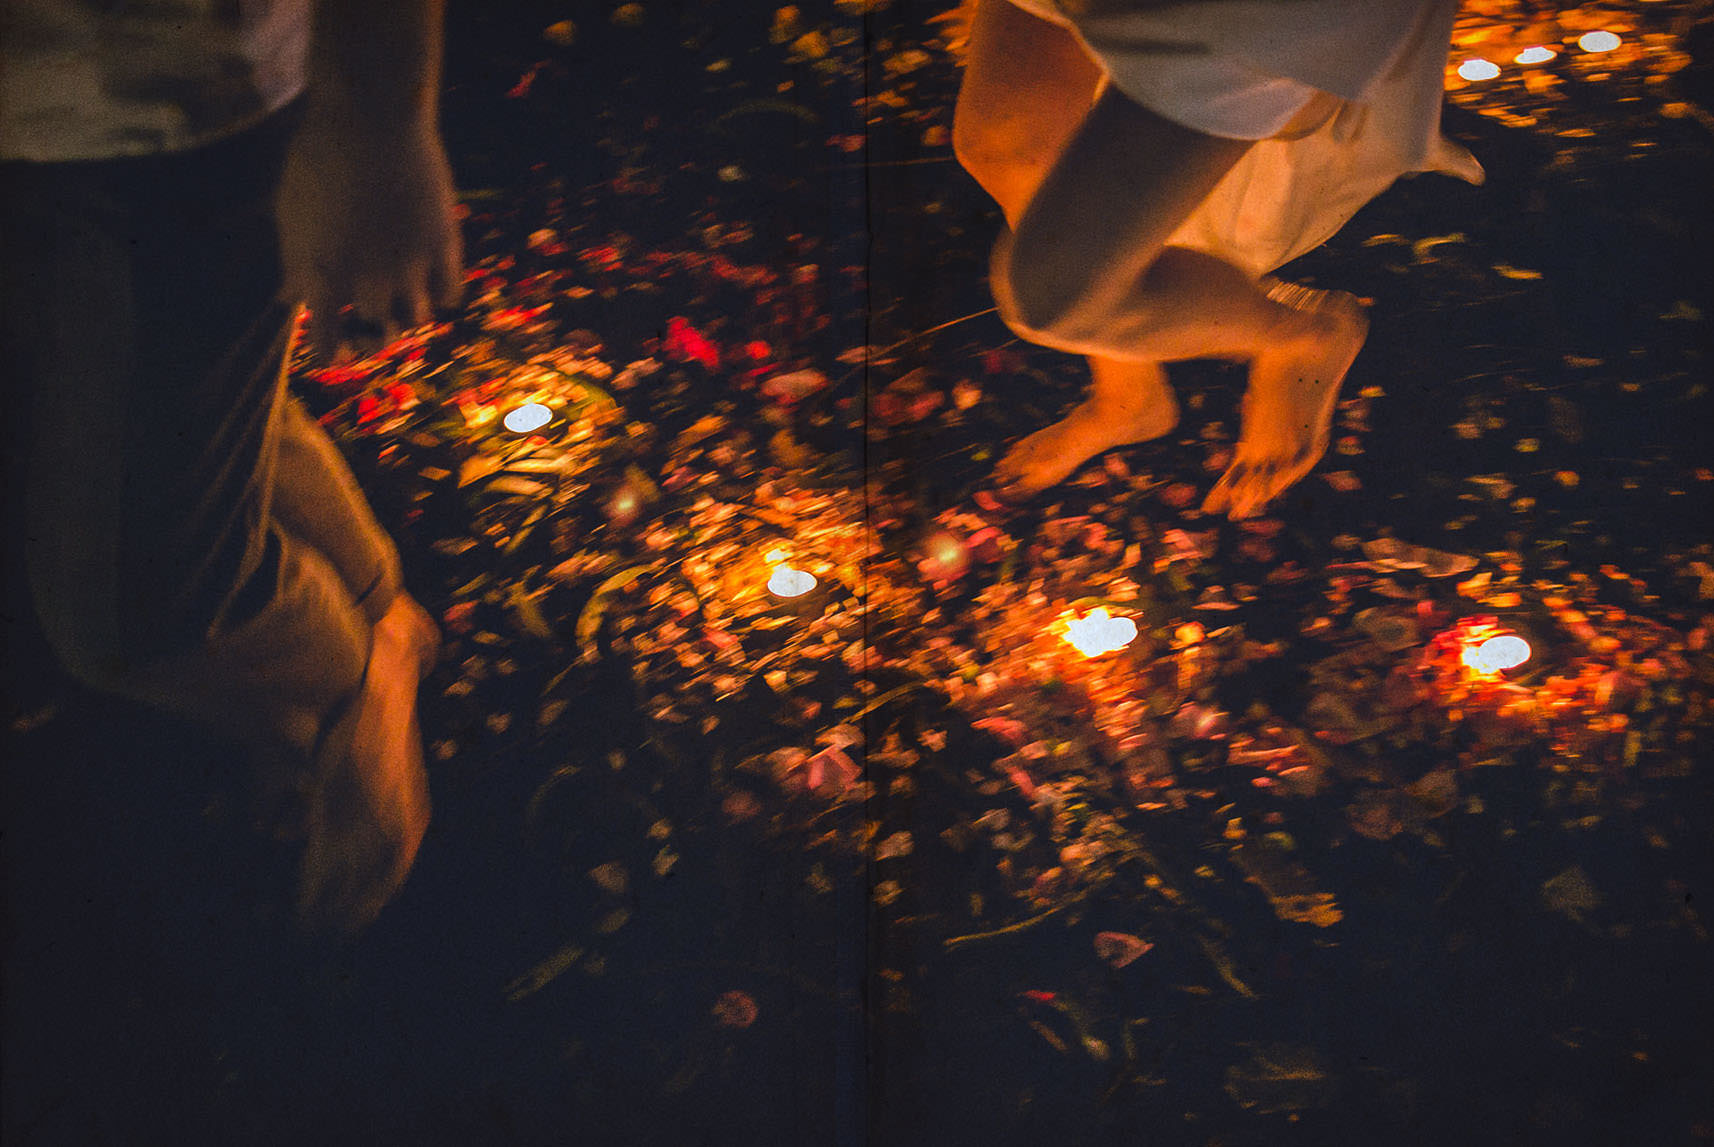 barefoots of bride and groom running between candles